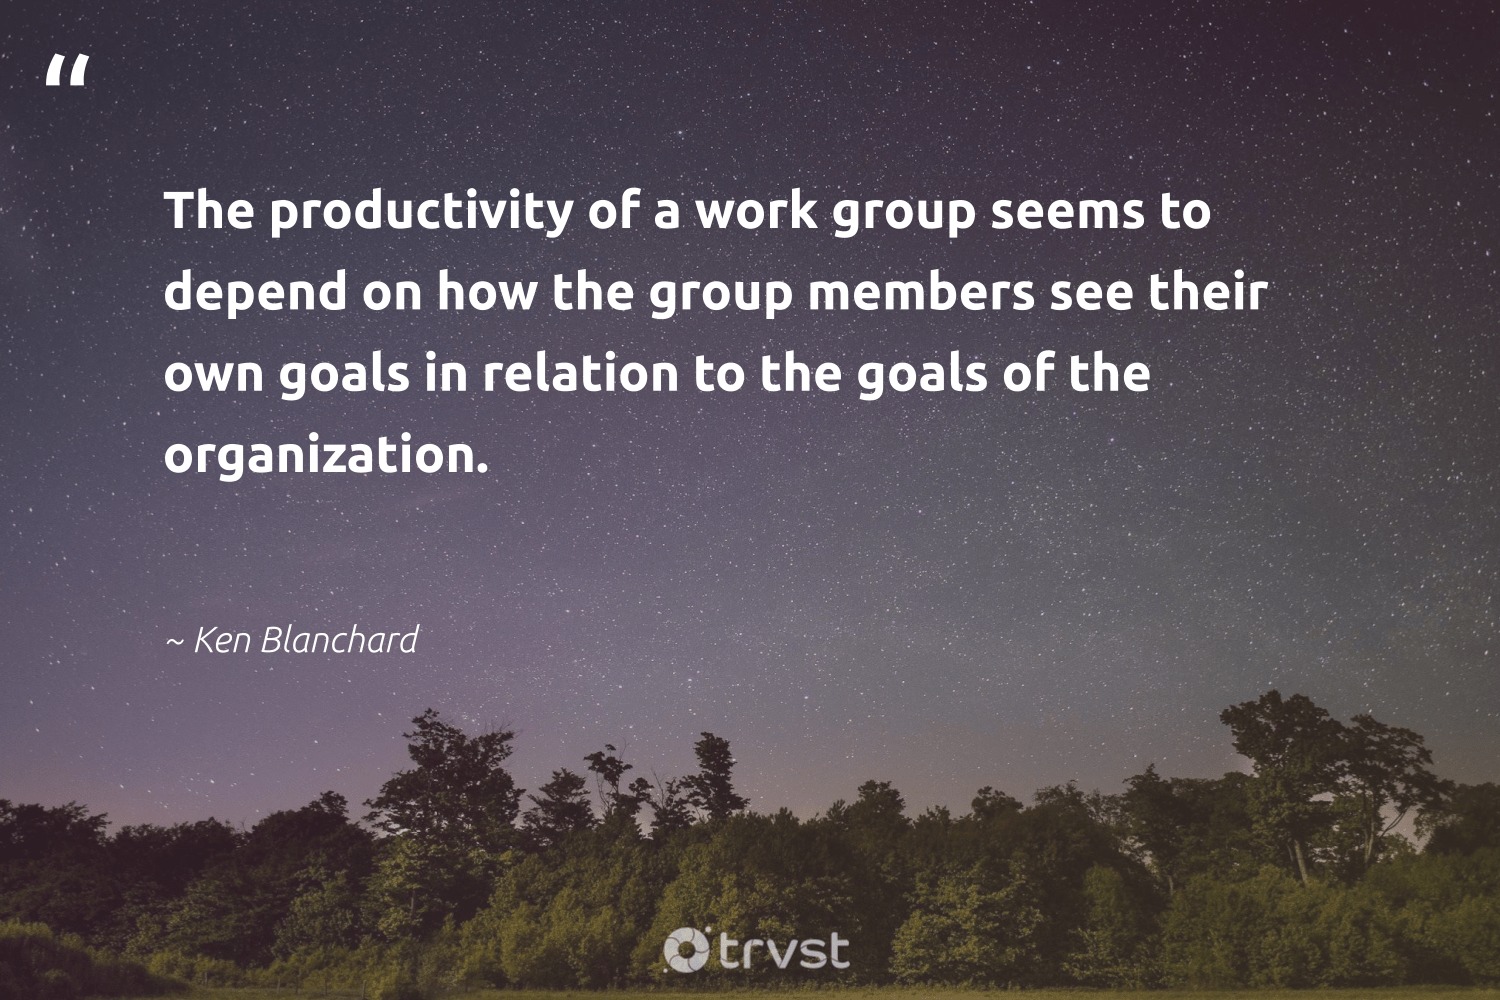 """""""The productivity of a work group seems to depend on how the group members see their own goals in relation to the goals of the organization.""""  - Ken Blanchard #trvst #quotes #goals #productivity #success #motivation #domore #nevergiveup #takeaction #focus #creativemindset #development"""